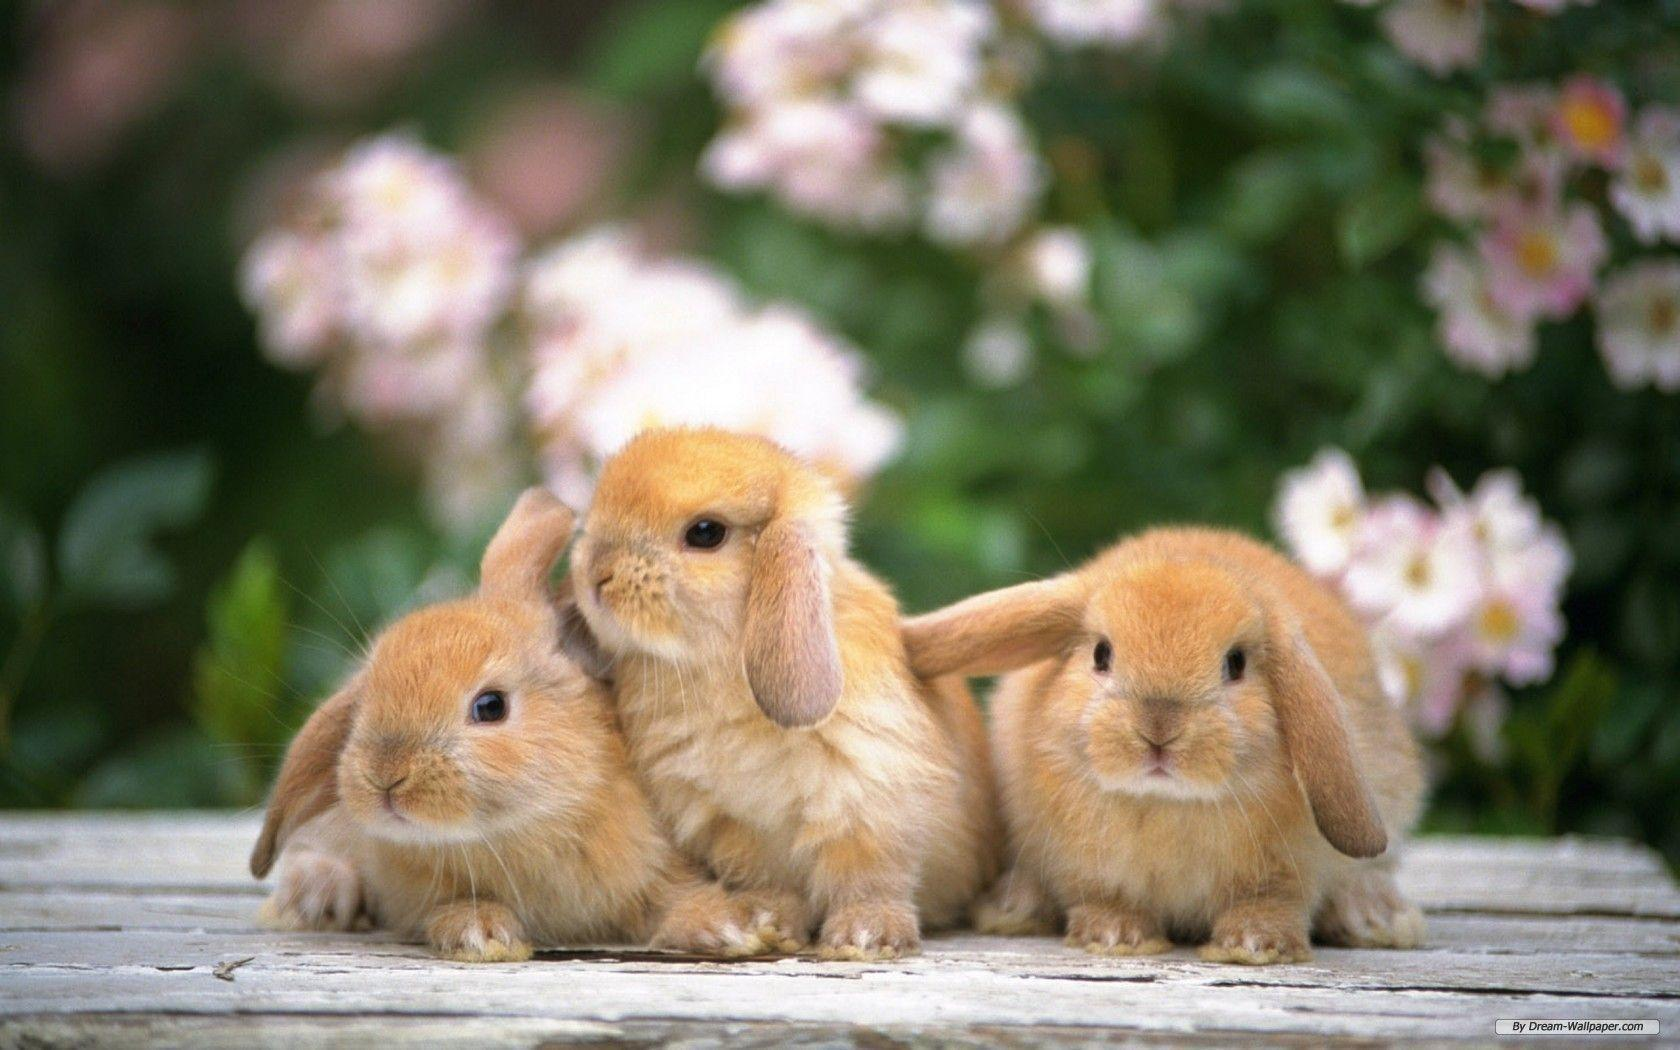 Funny Rabbit Wallpaper 01 | hdwallpapers-